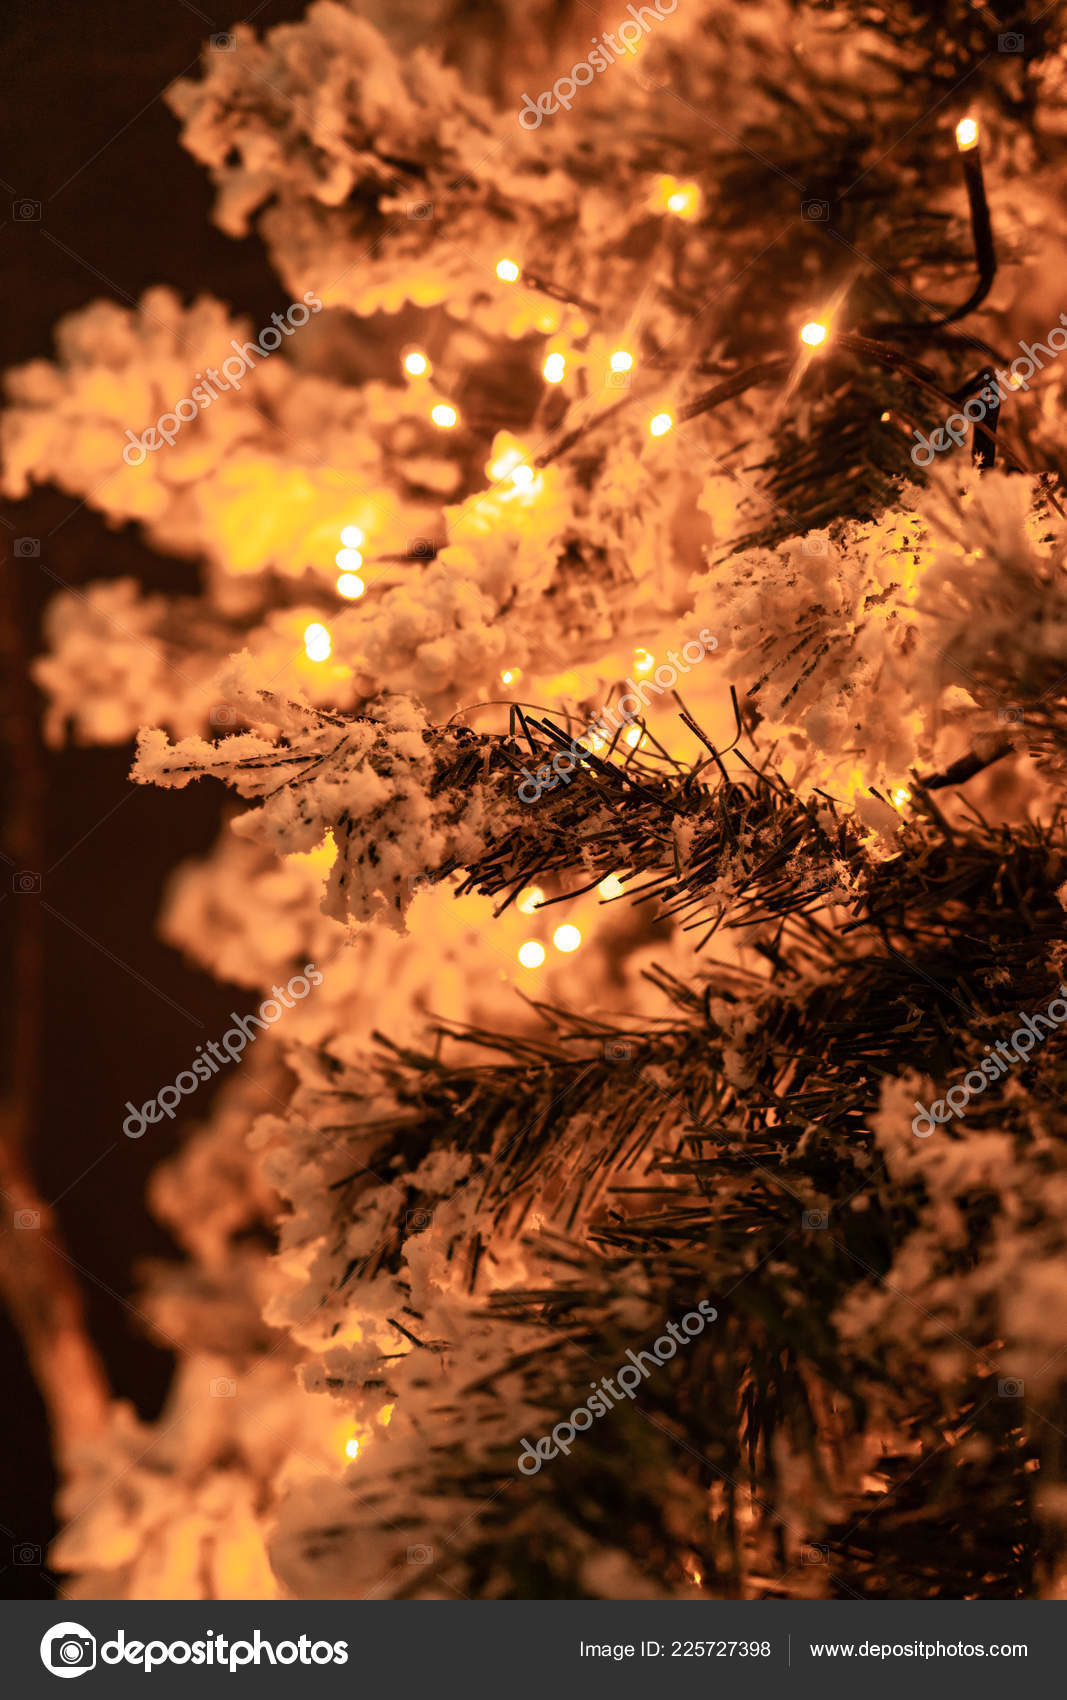 Pictures Decorated White Flocked Christmas Trees Festive